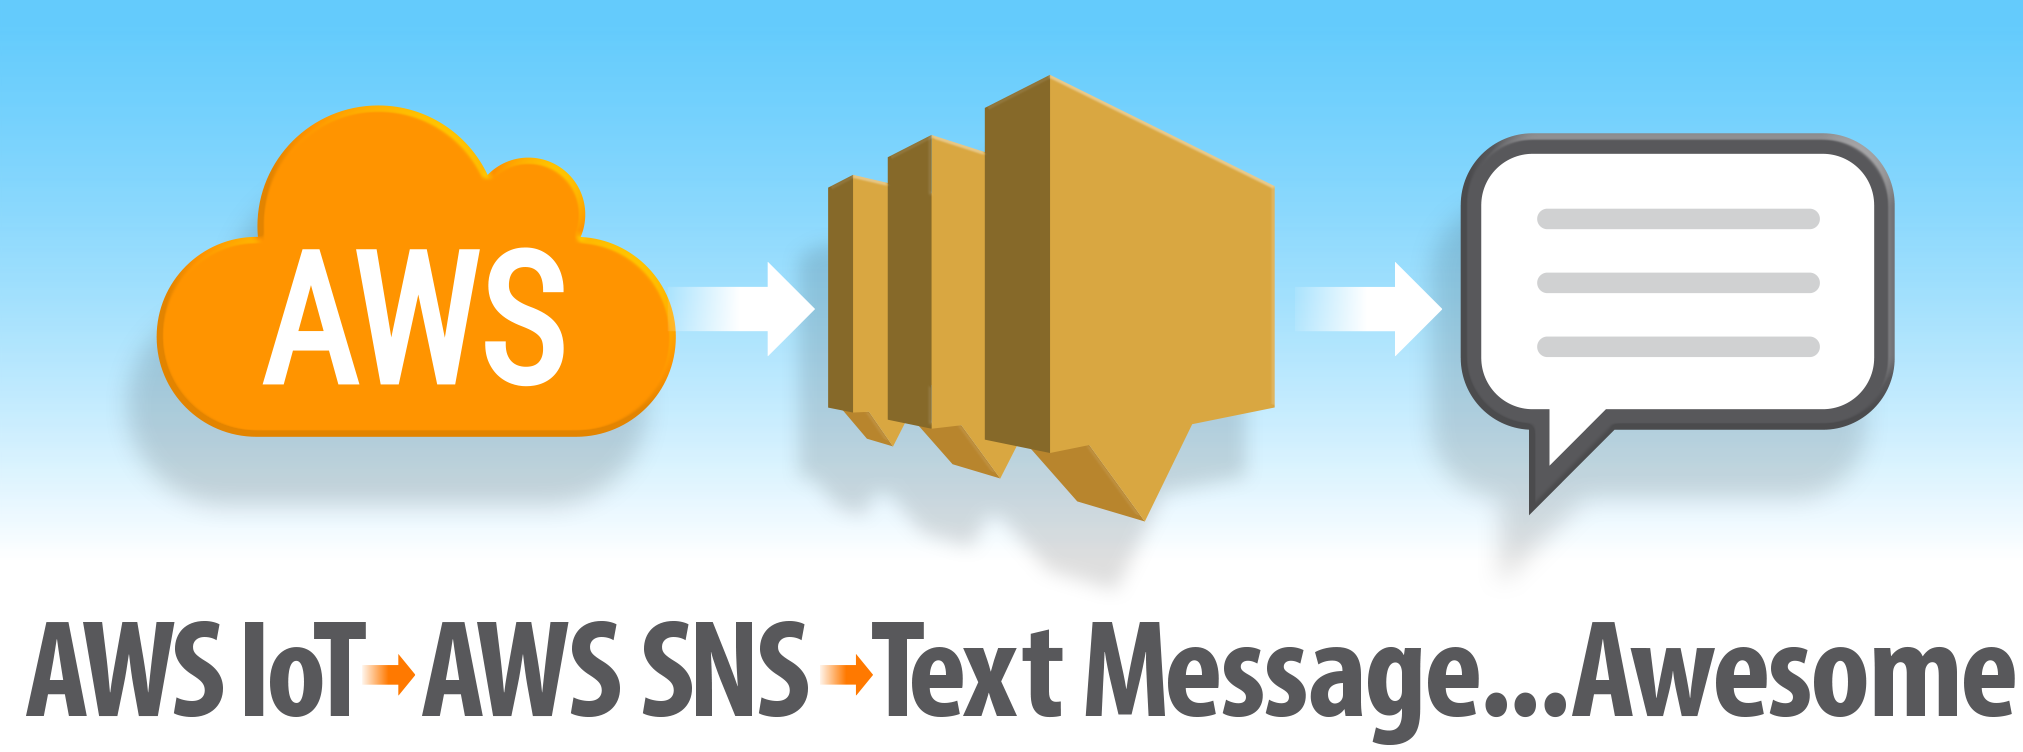 AWS IoT -> AWS SNS -> Text Message -> Awesome